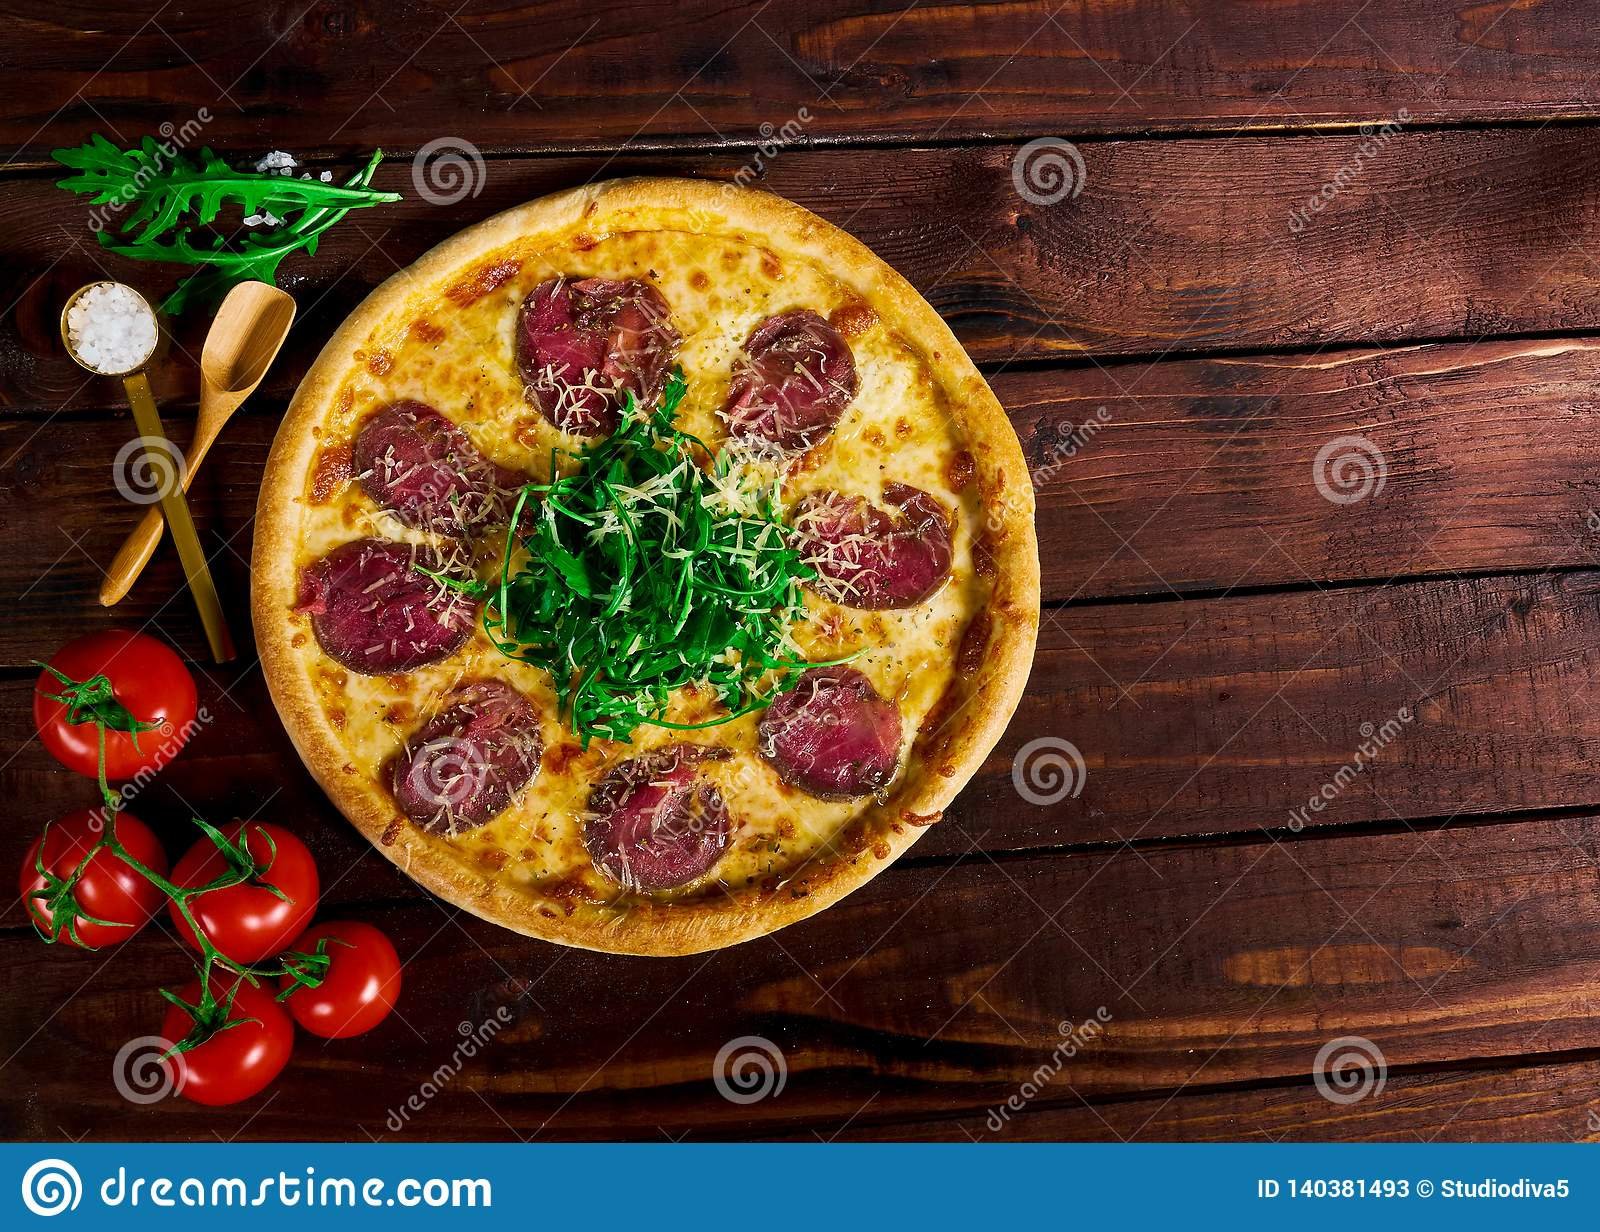 Pizza with beef on a wooden table. beautiful background